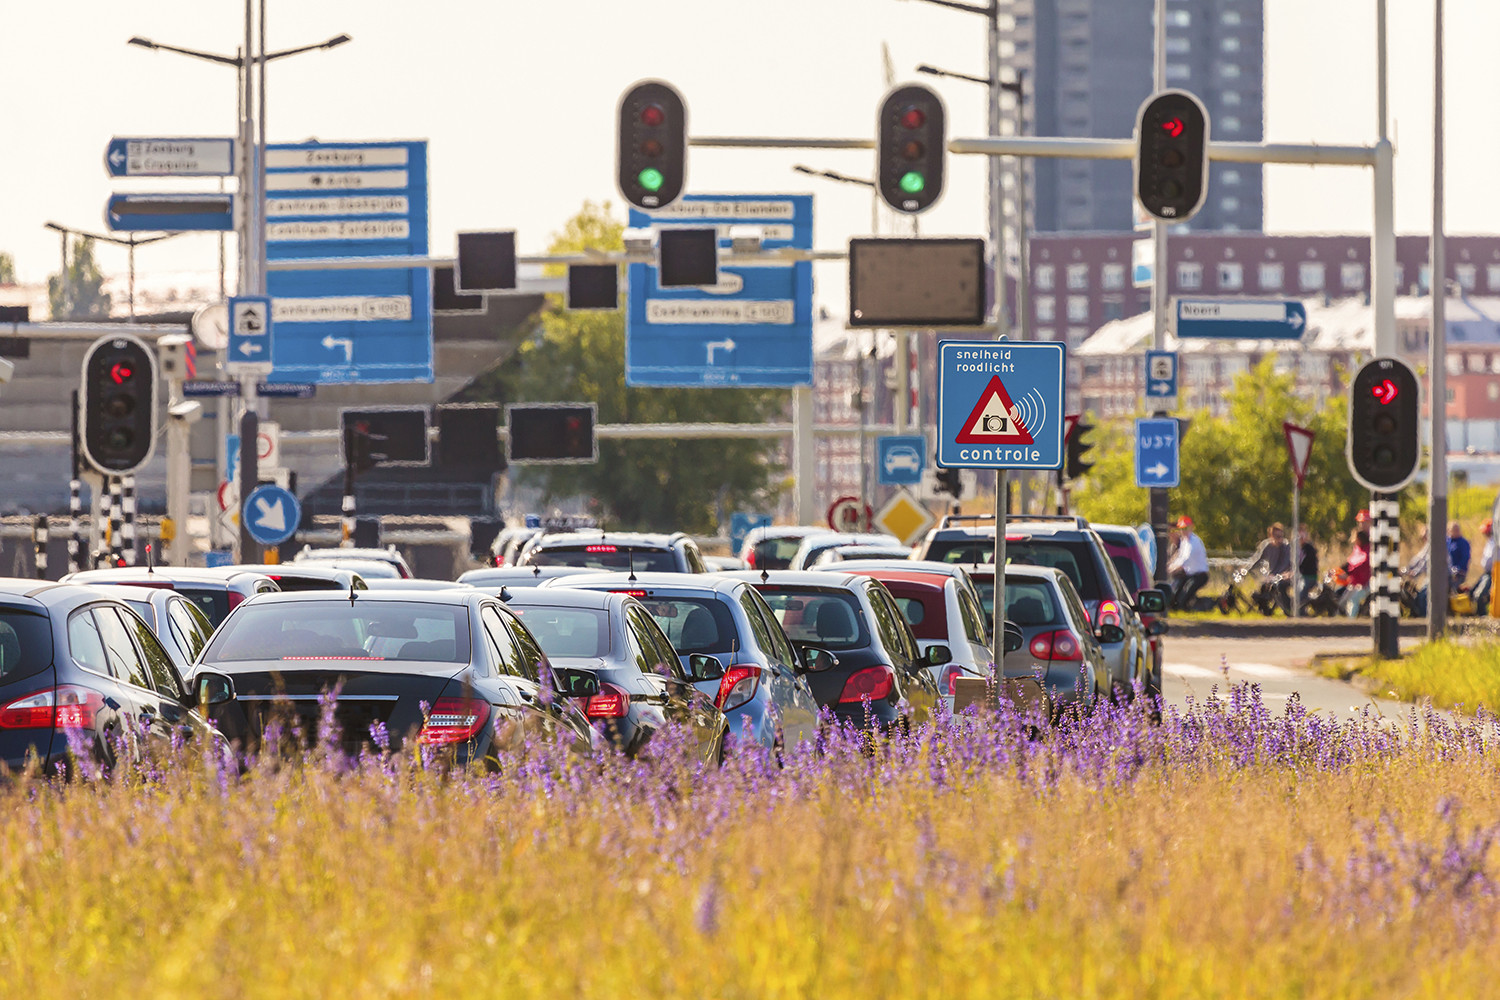 Rush hour in Amsterdam, The Netherlands